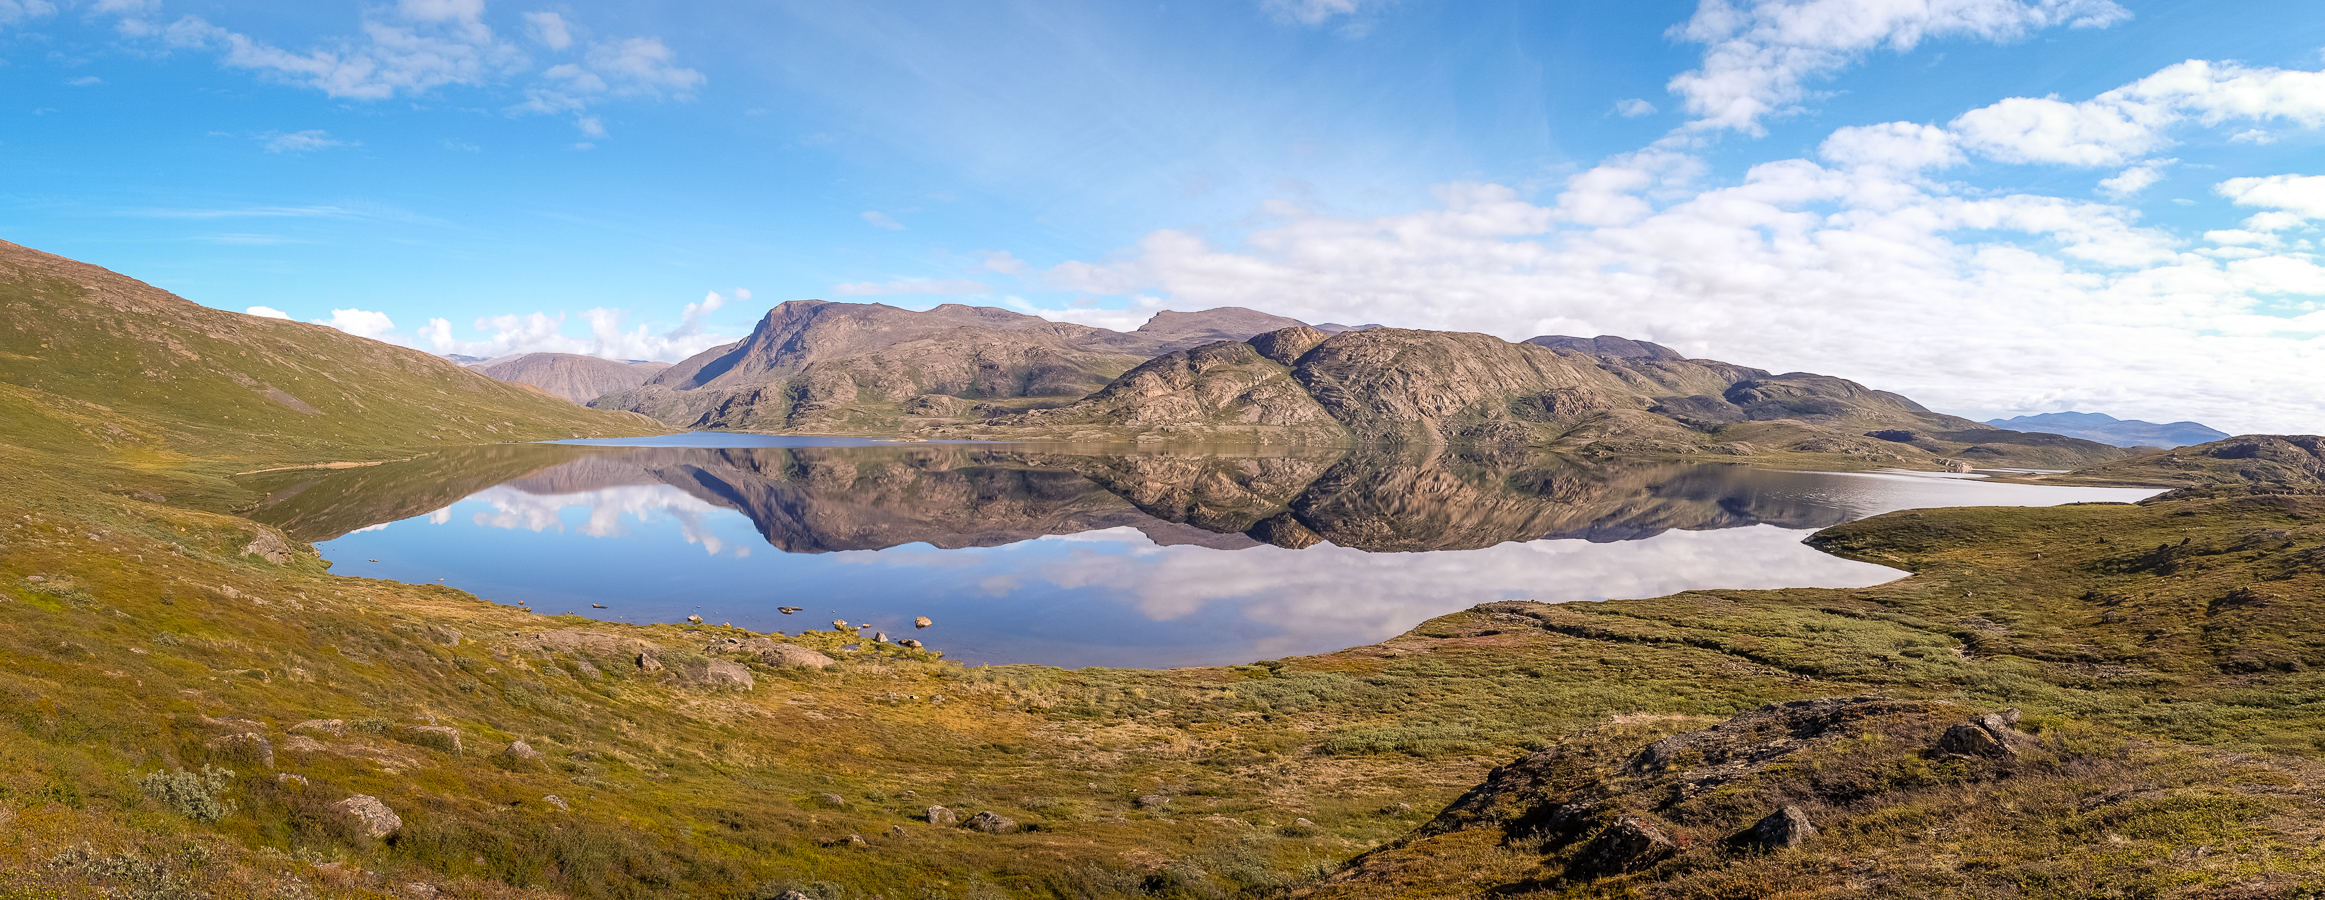 Perfect reflections in the lake - - Arctic Circle Trail - West Greenland